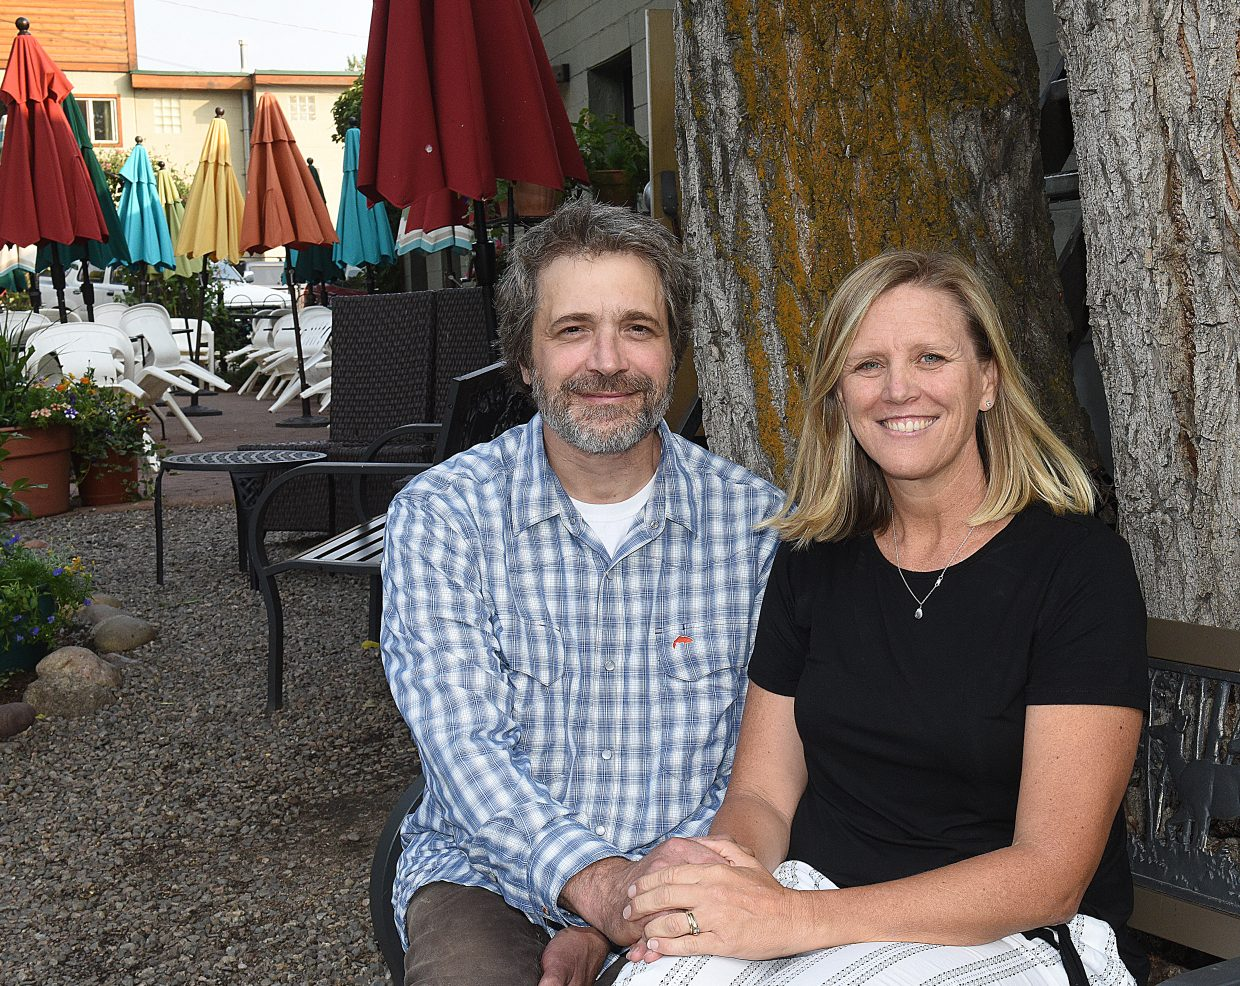 Jason and Kelly Landers, owners of Creekside Cafe & Grill, are being recognized as 2018 Navigator Award Service Excellence Persons of the Year.